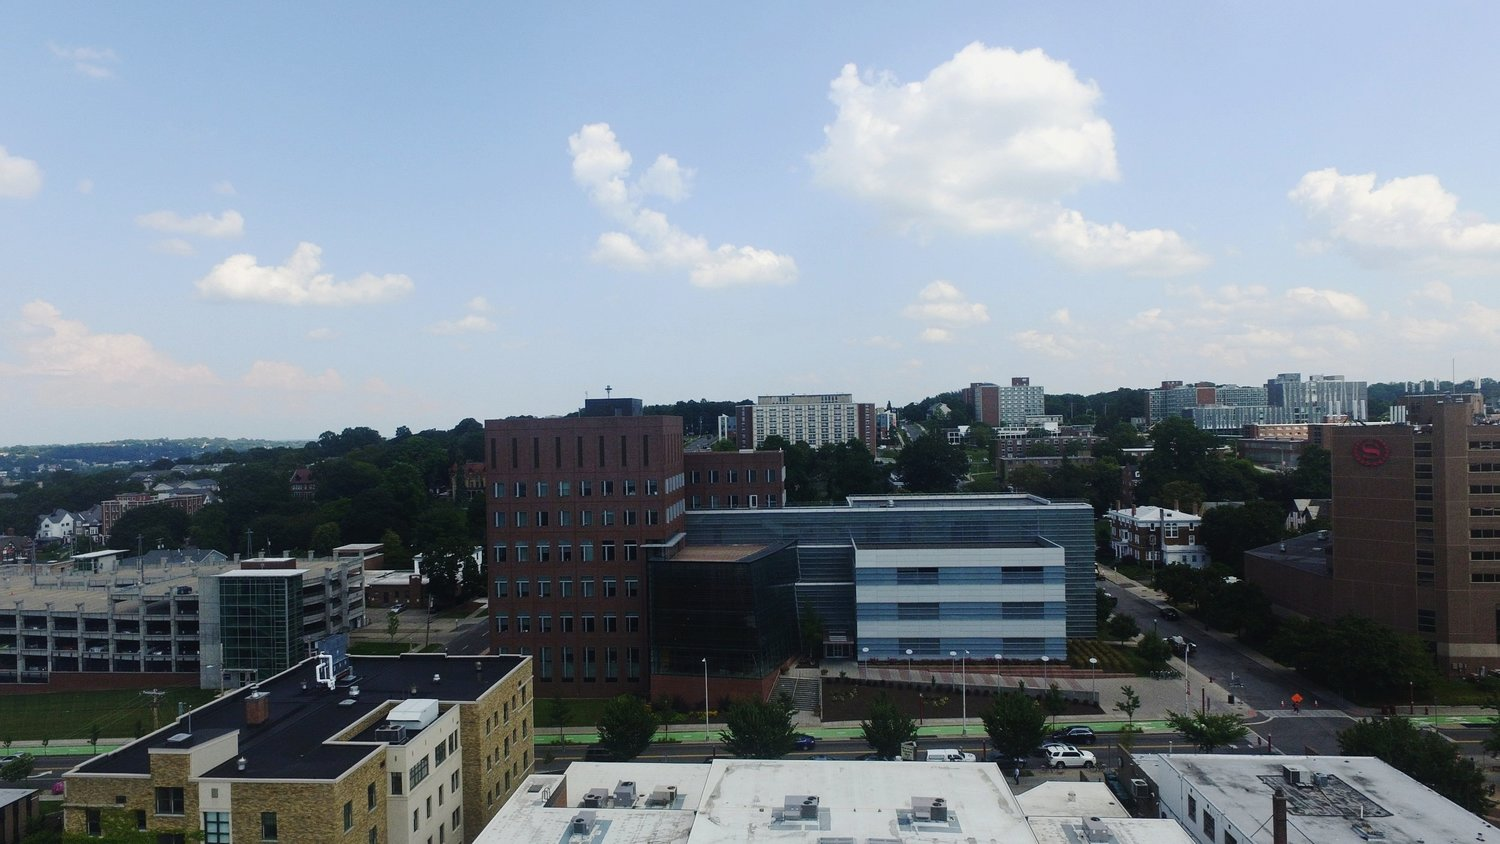 View from atop The Marshall SU building